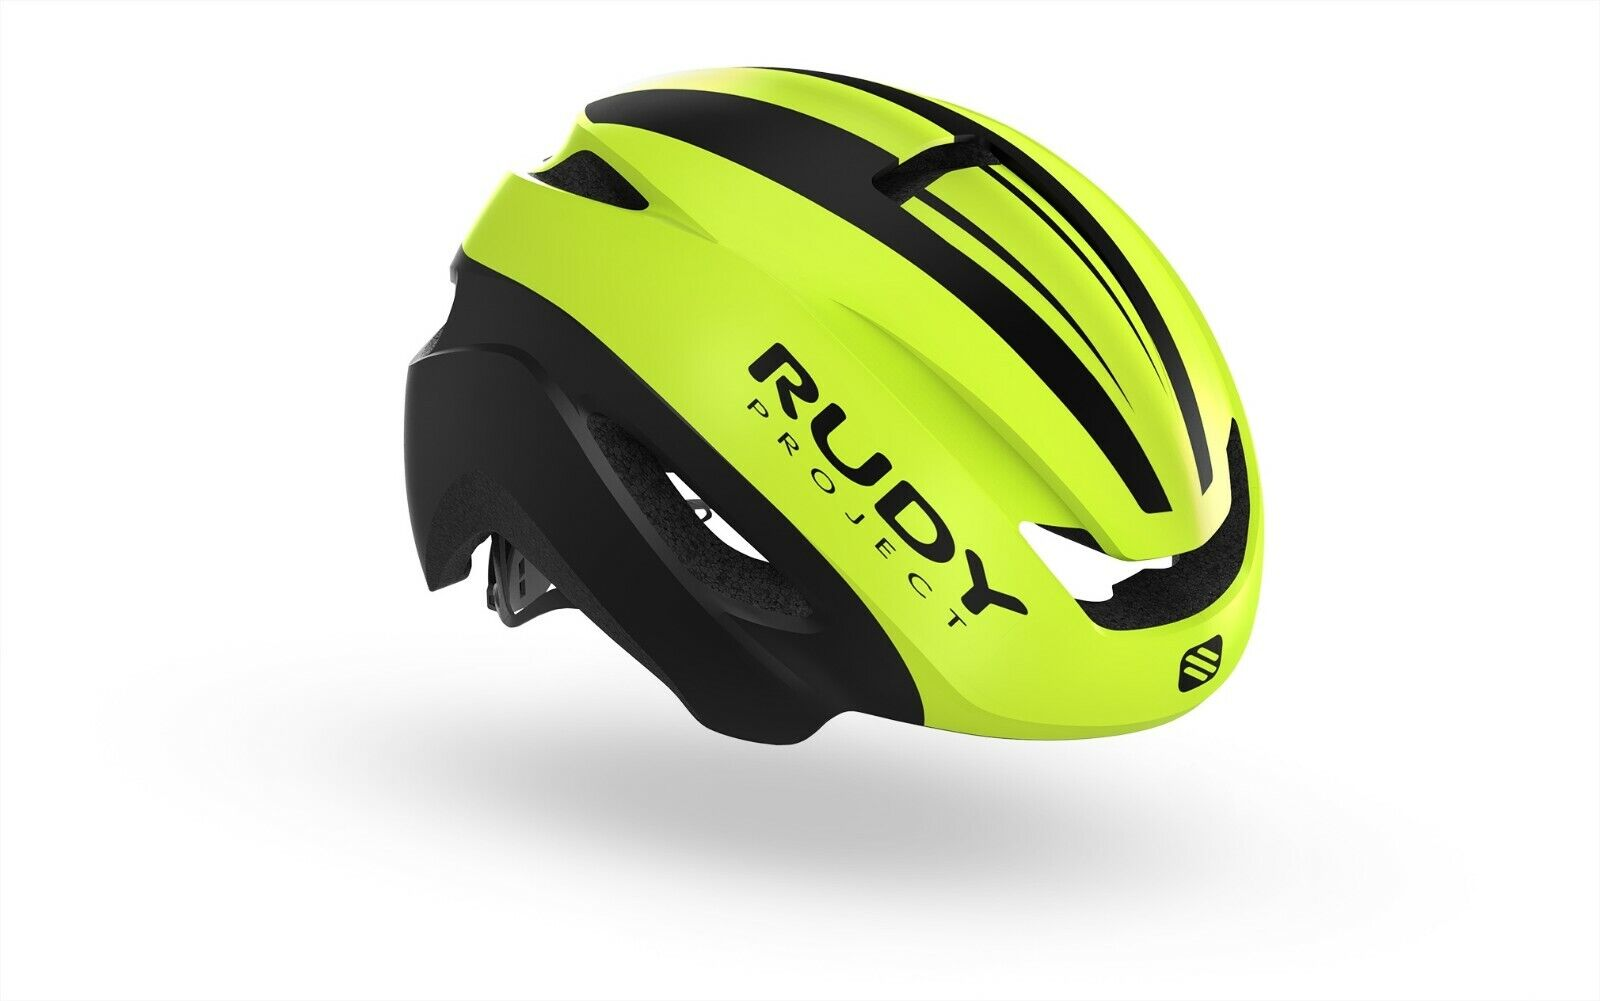 Casco RUDY PROJECT VOLANTIS amarillo Flu negro